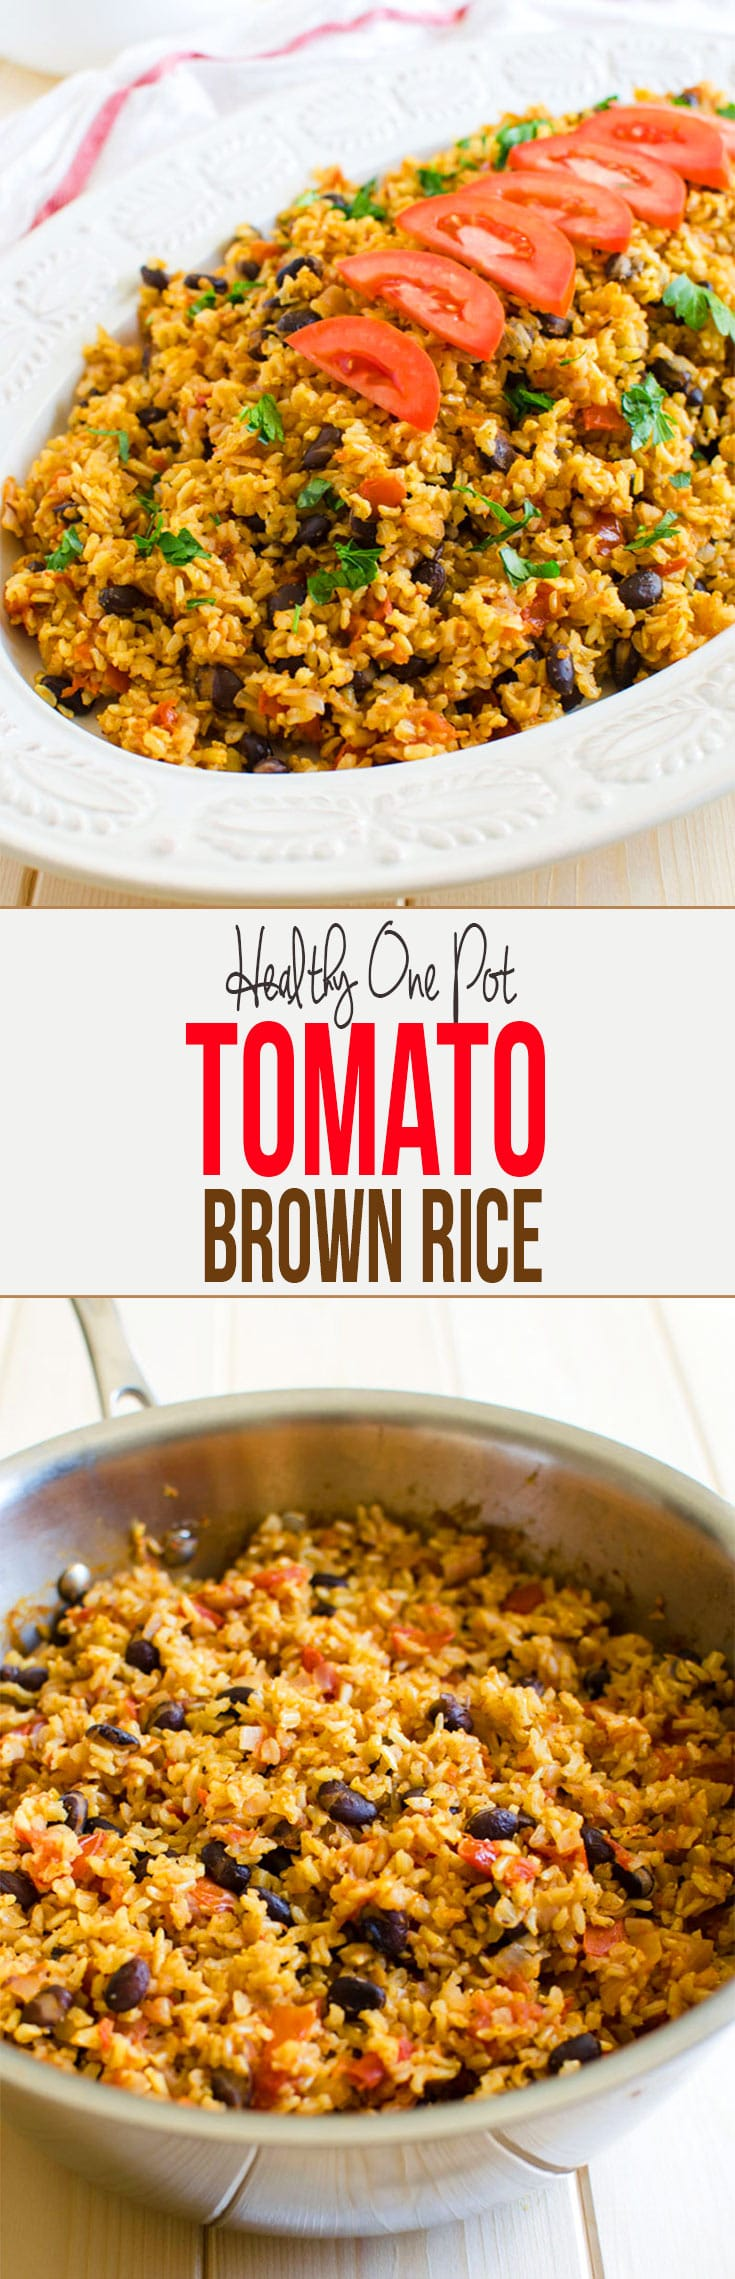 This one pot Mexican brown rice with tomatoes is a great option for any weeknight meals. It is really filling and tastes so fresh.